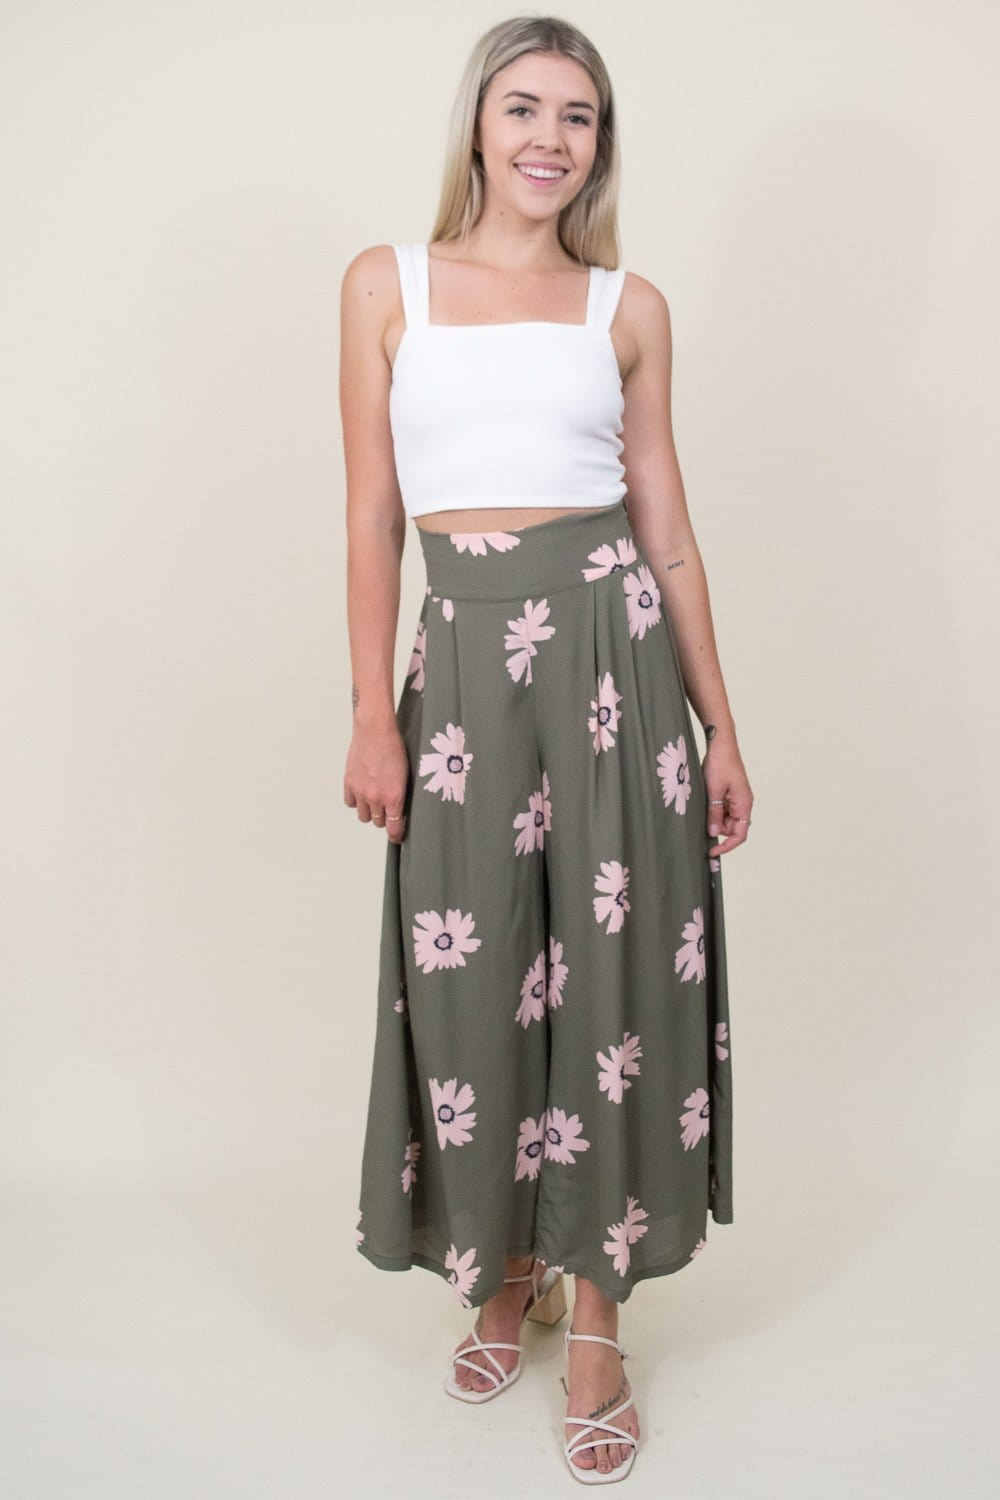 GOLDYN Perfect Palazzo Pant in Sage Floral